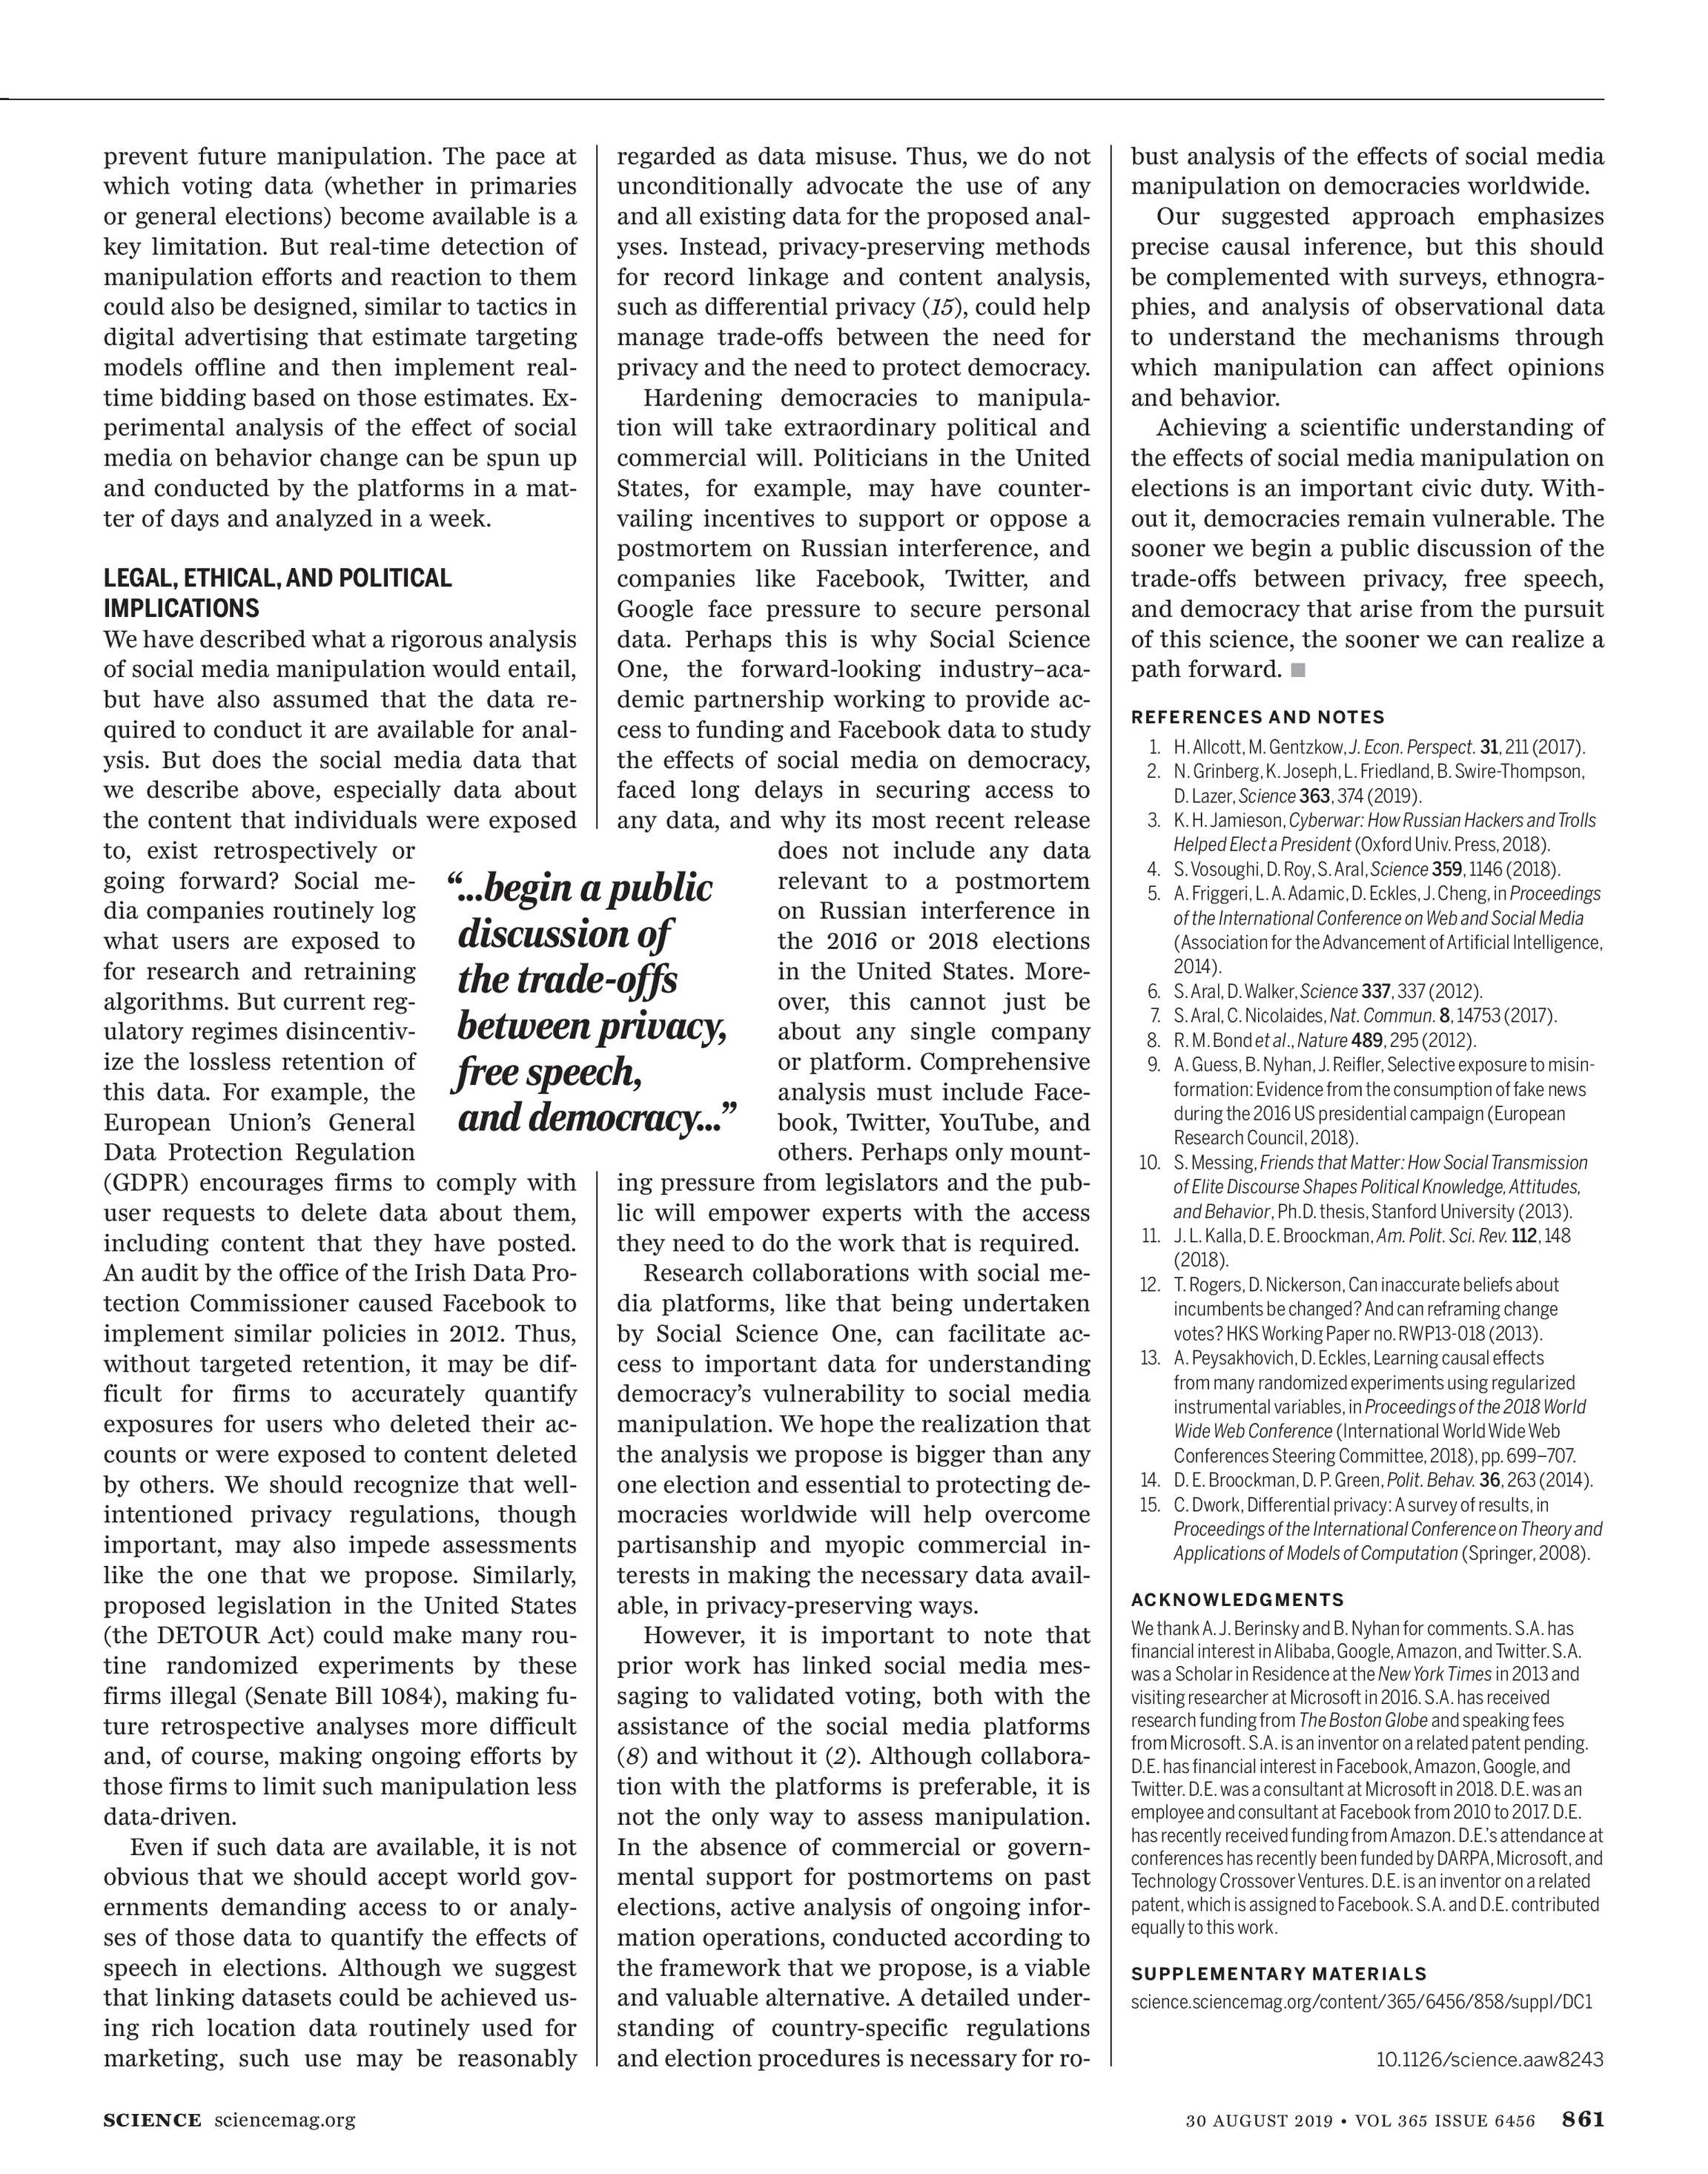 Science Magazine - August 30, 2019 - page 862